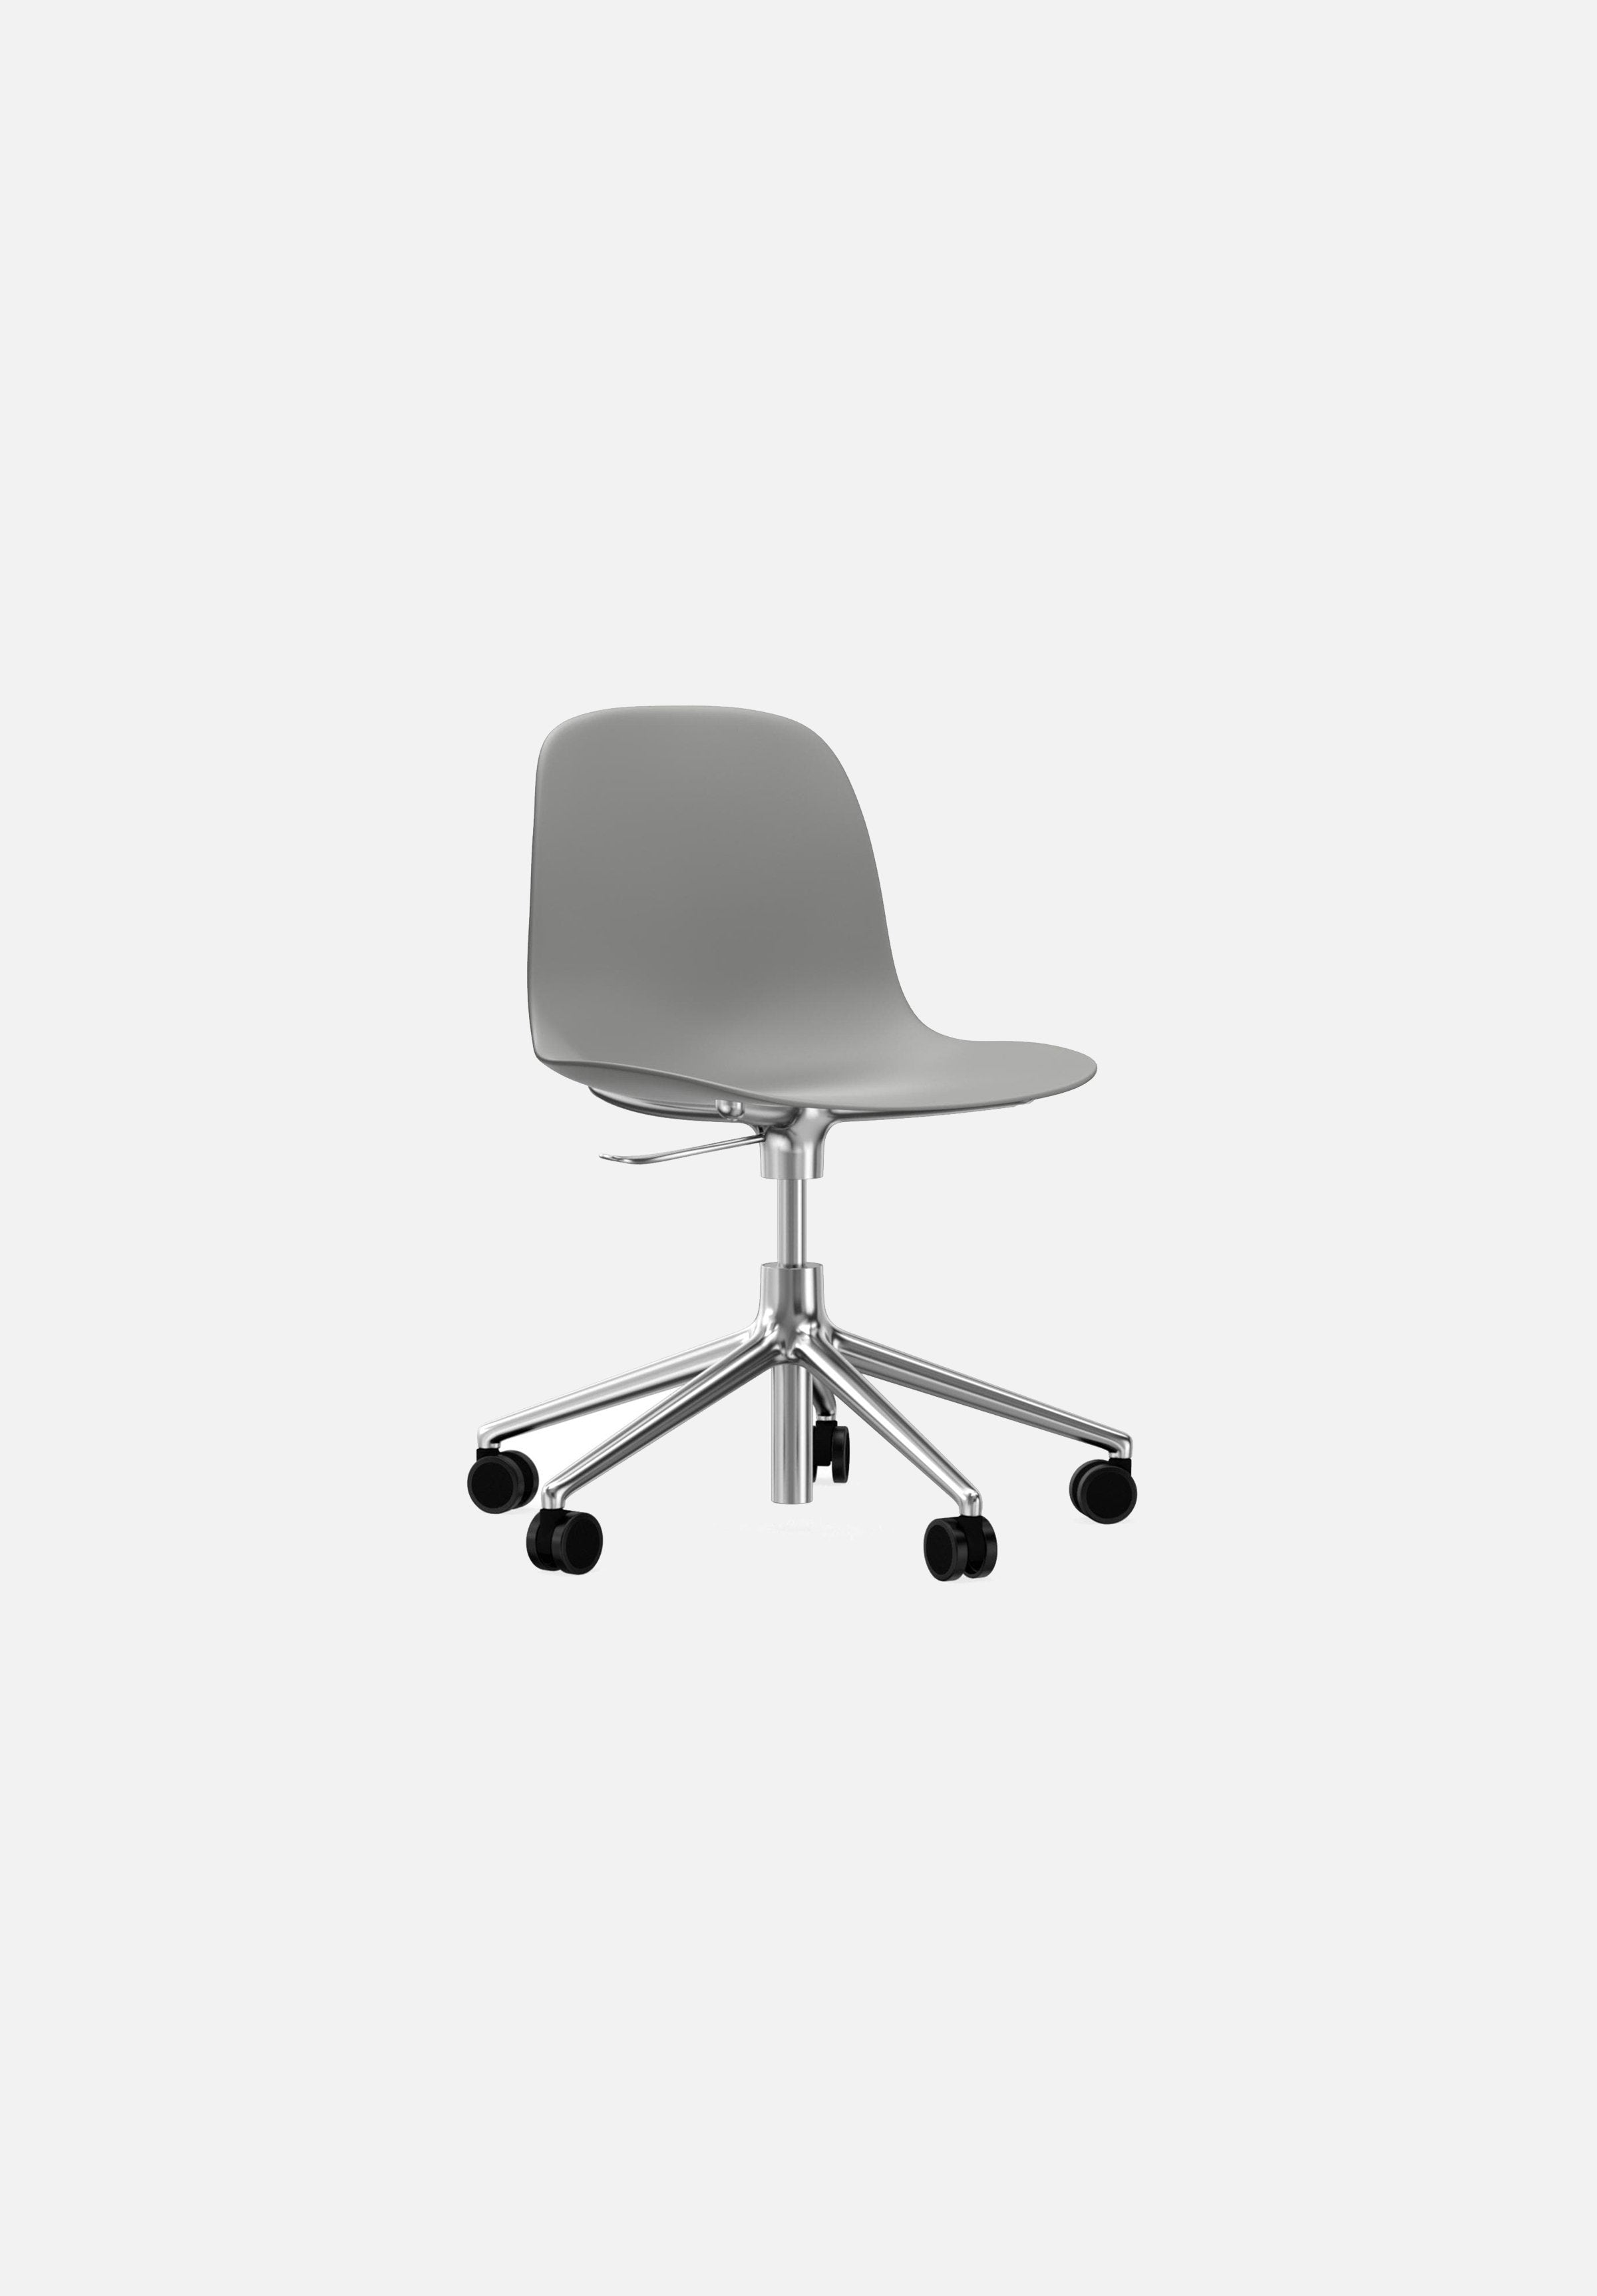 Form Chair — Swivel Gaslift-Simon Legald-Normann Copenhagen-Grey-Polished Aluminum-Average-canada-design-store-danish-denmark-furniture-interior